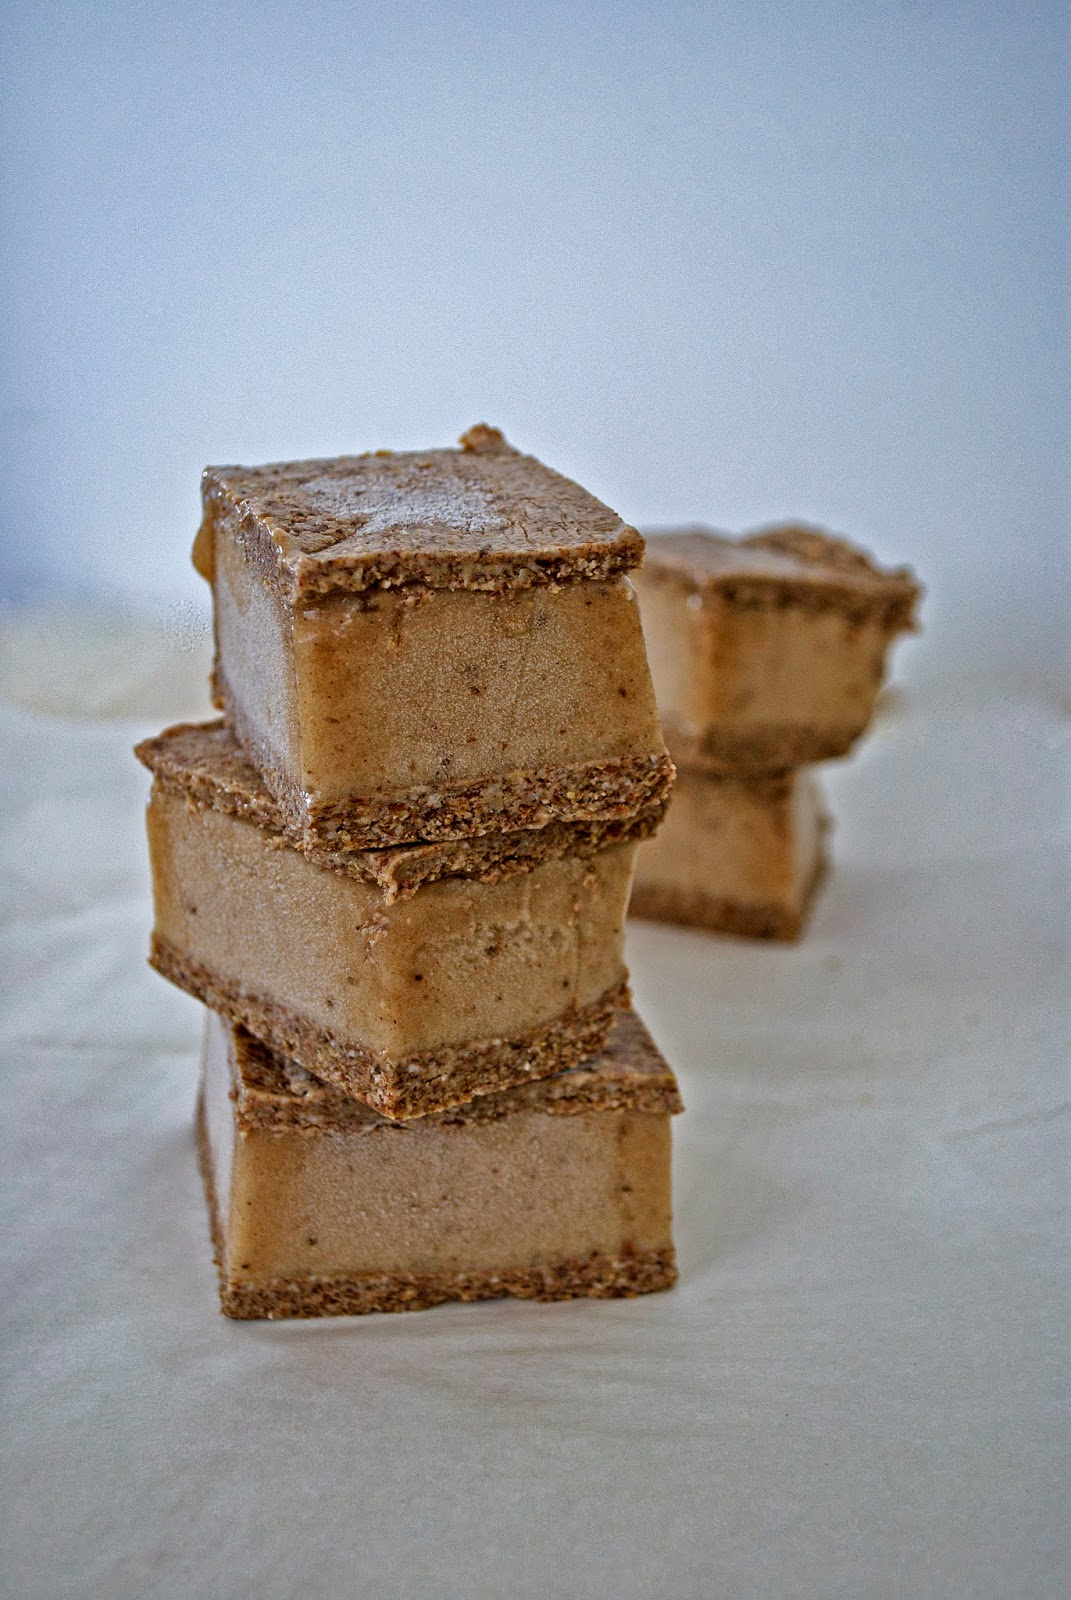 real raw kitchen: RECIPE: gingerbread ice cream sandwiches